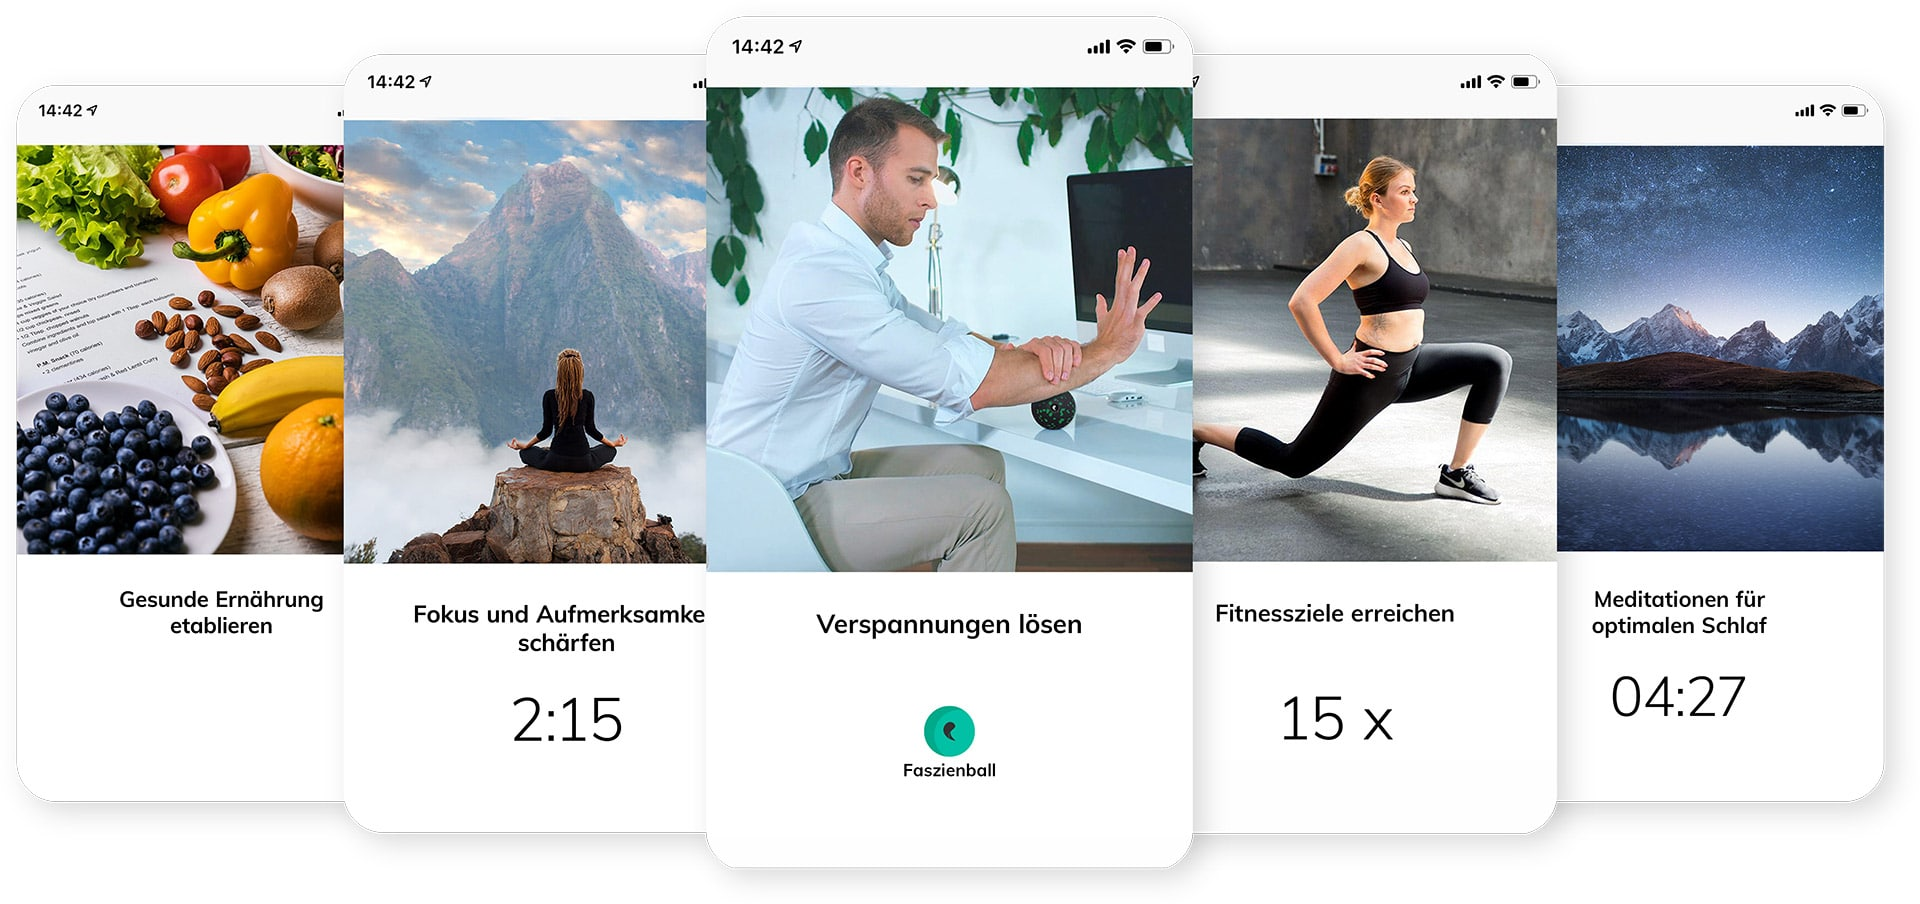 The Design and Content of the Humanoo App